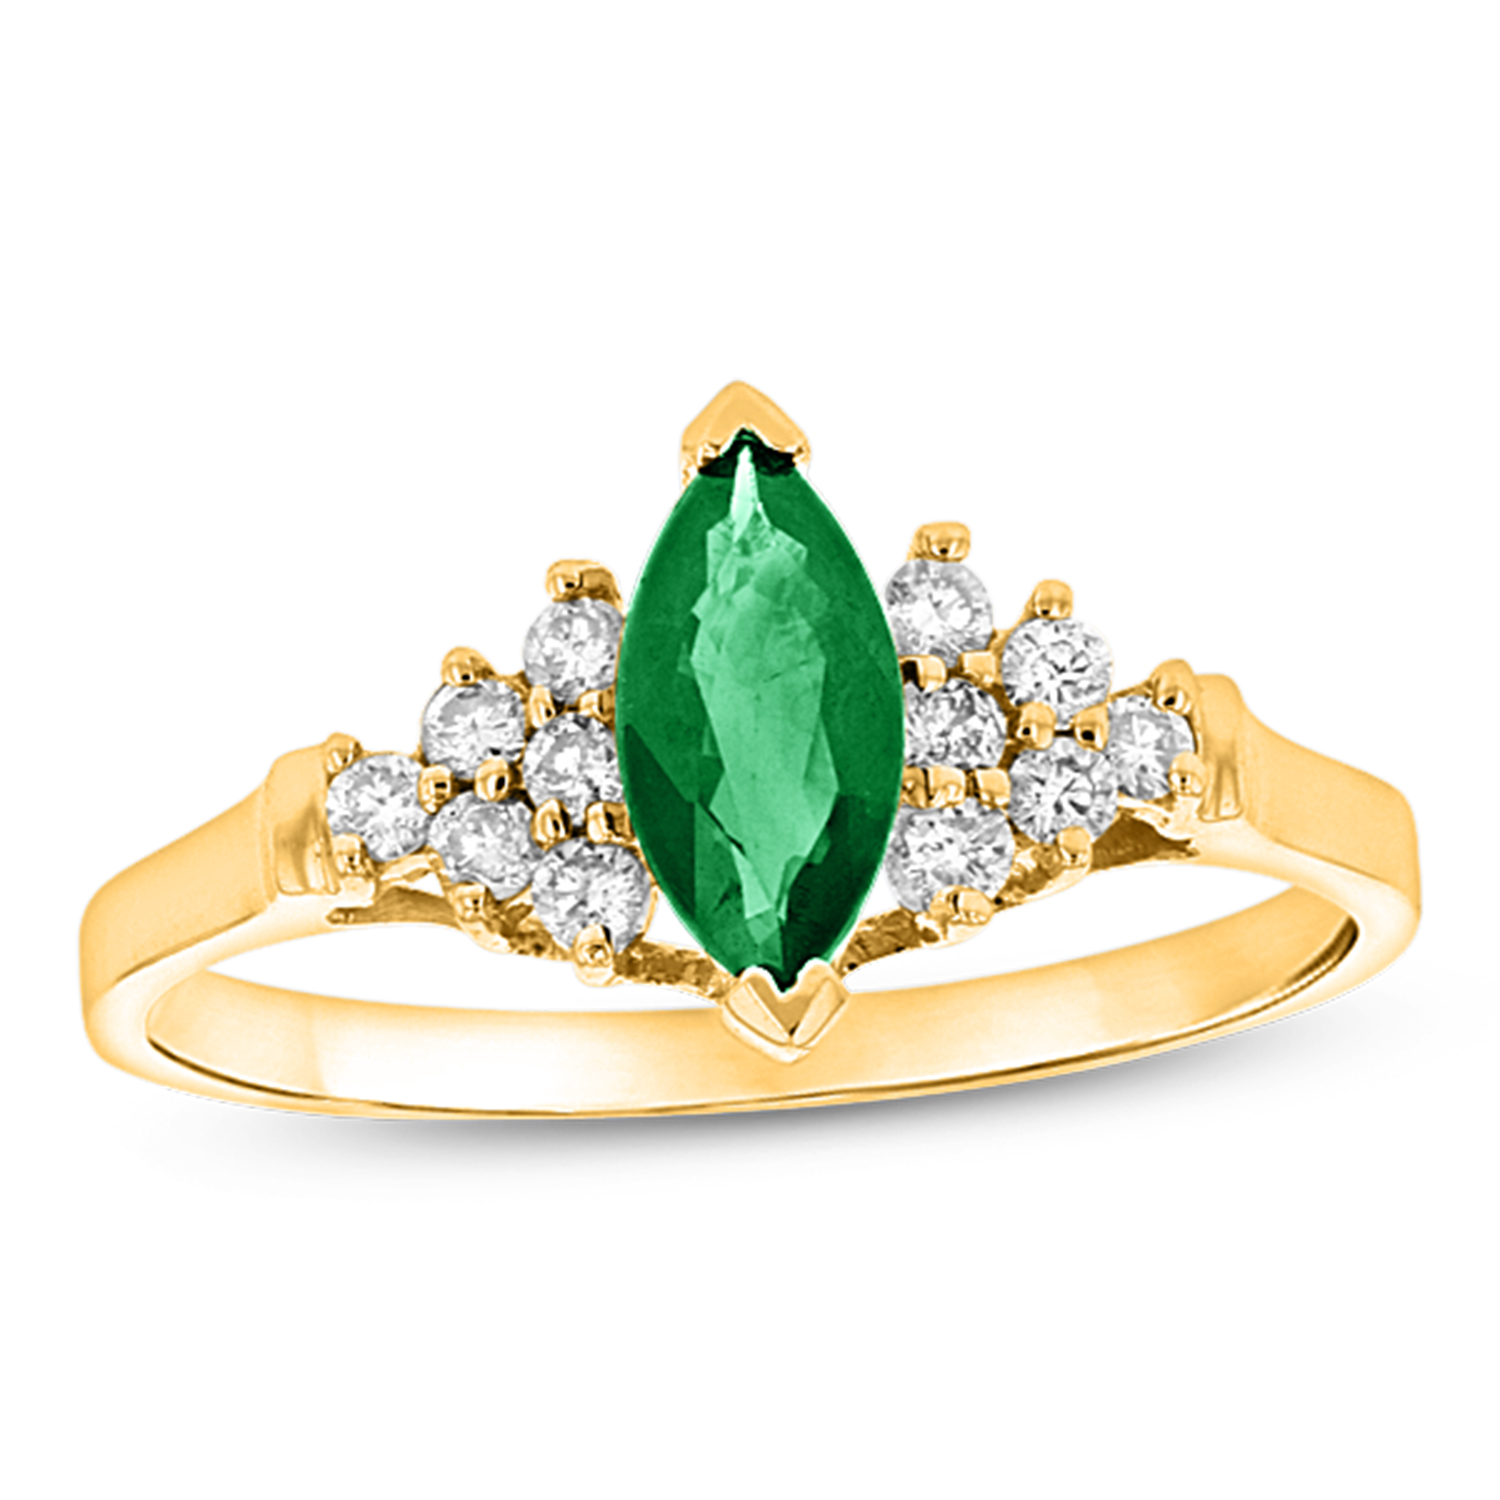 View 0.19ctw Diamond and Marquis Emerald Ring in 14k Yellow Gold